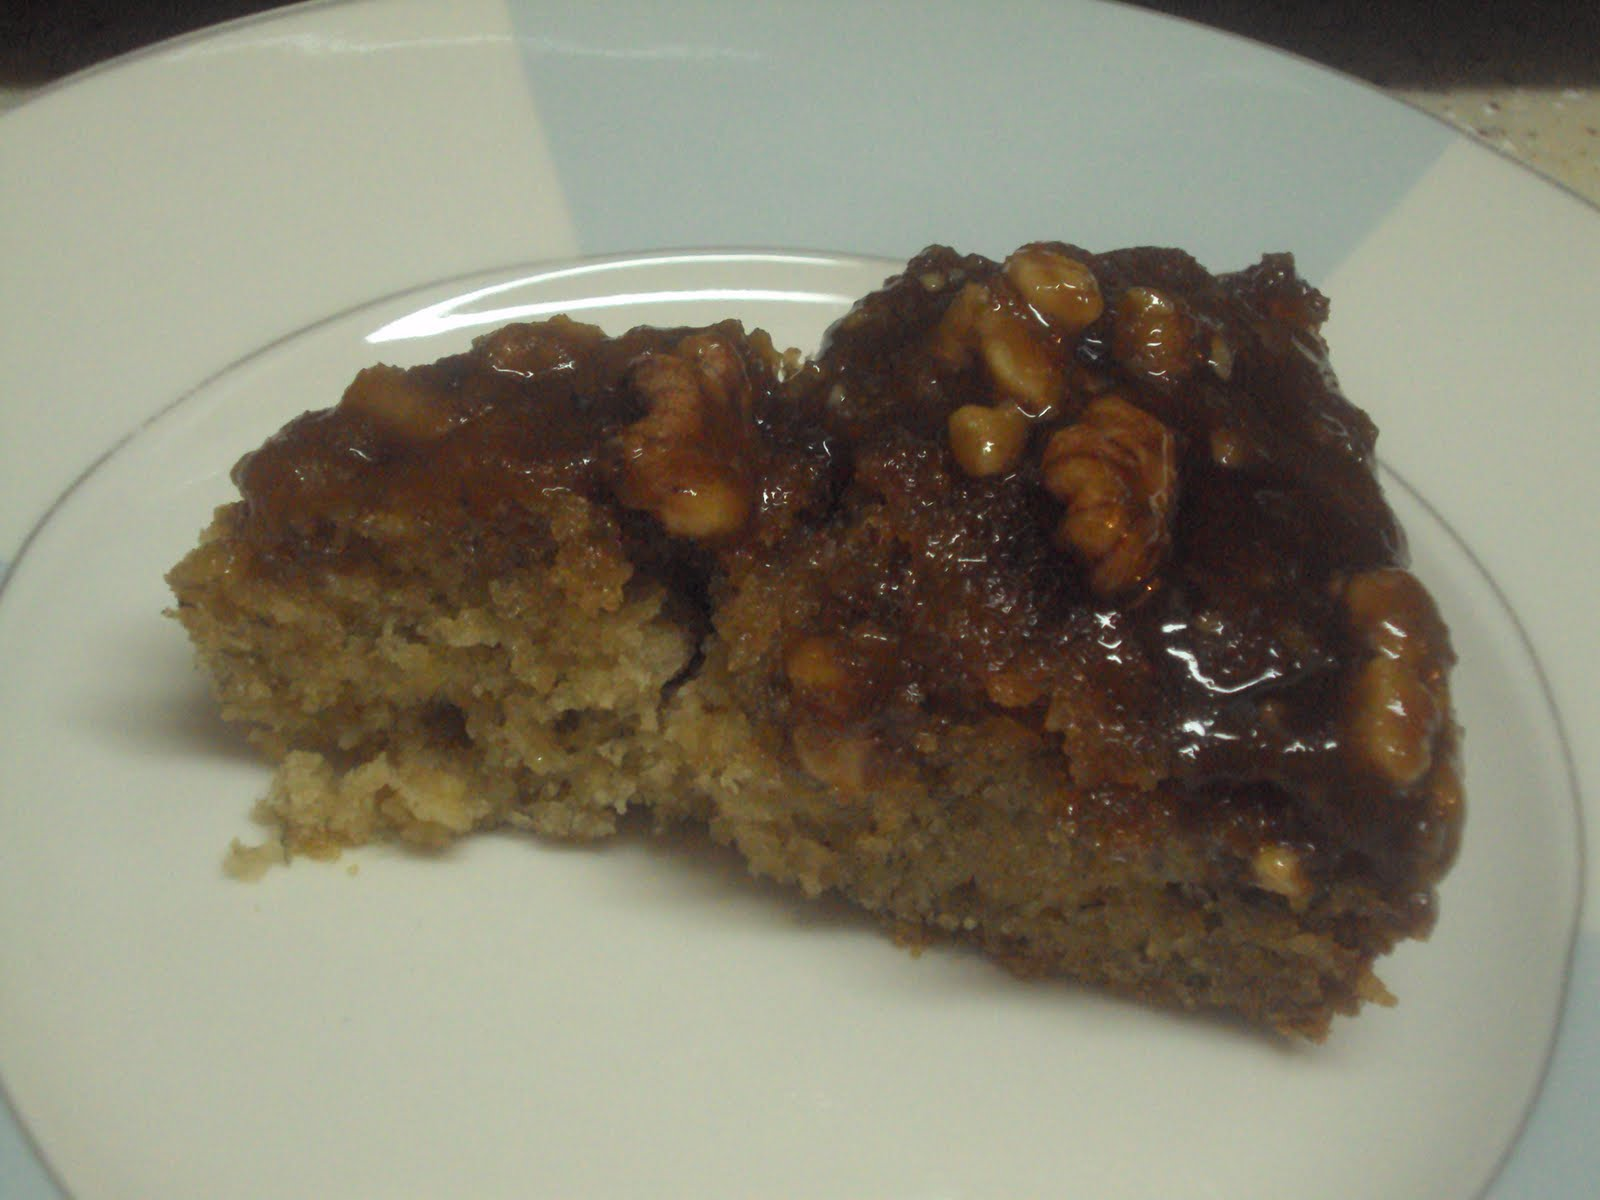 Scrappy Cocoa's Creations: Caramel Walnut Upside Down Banana Cake!